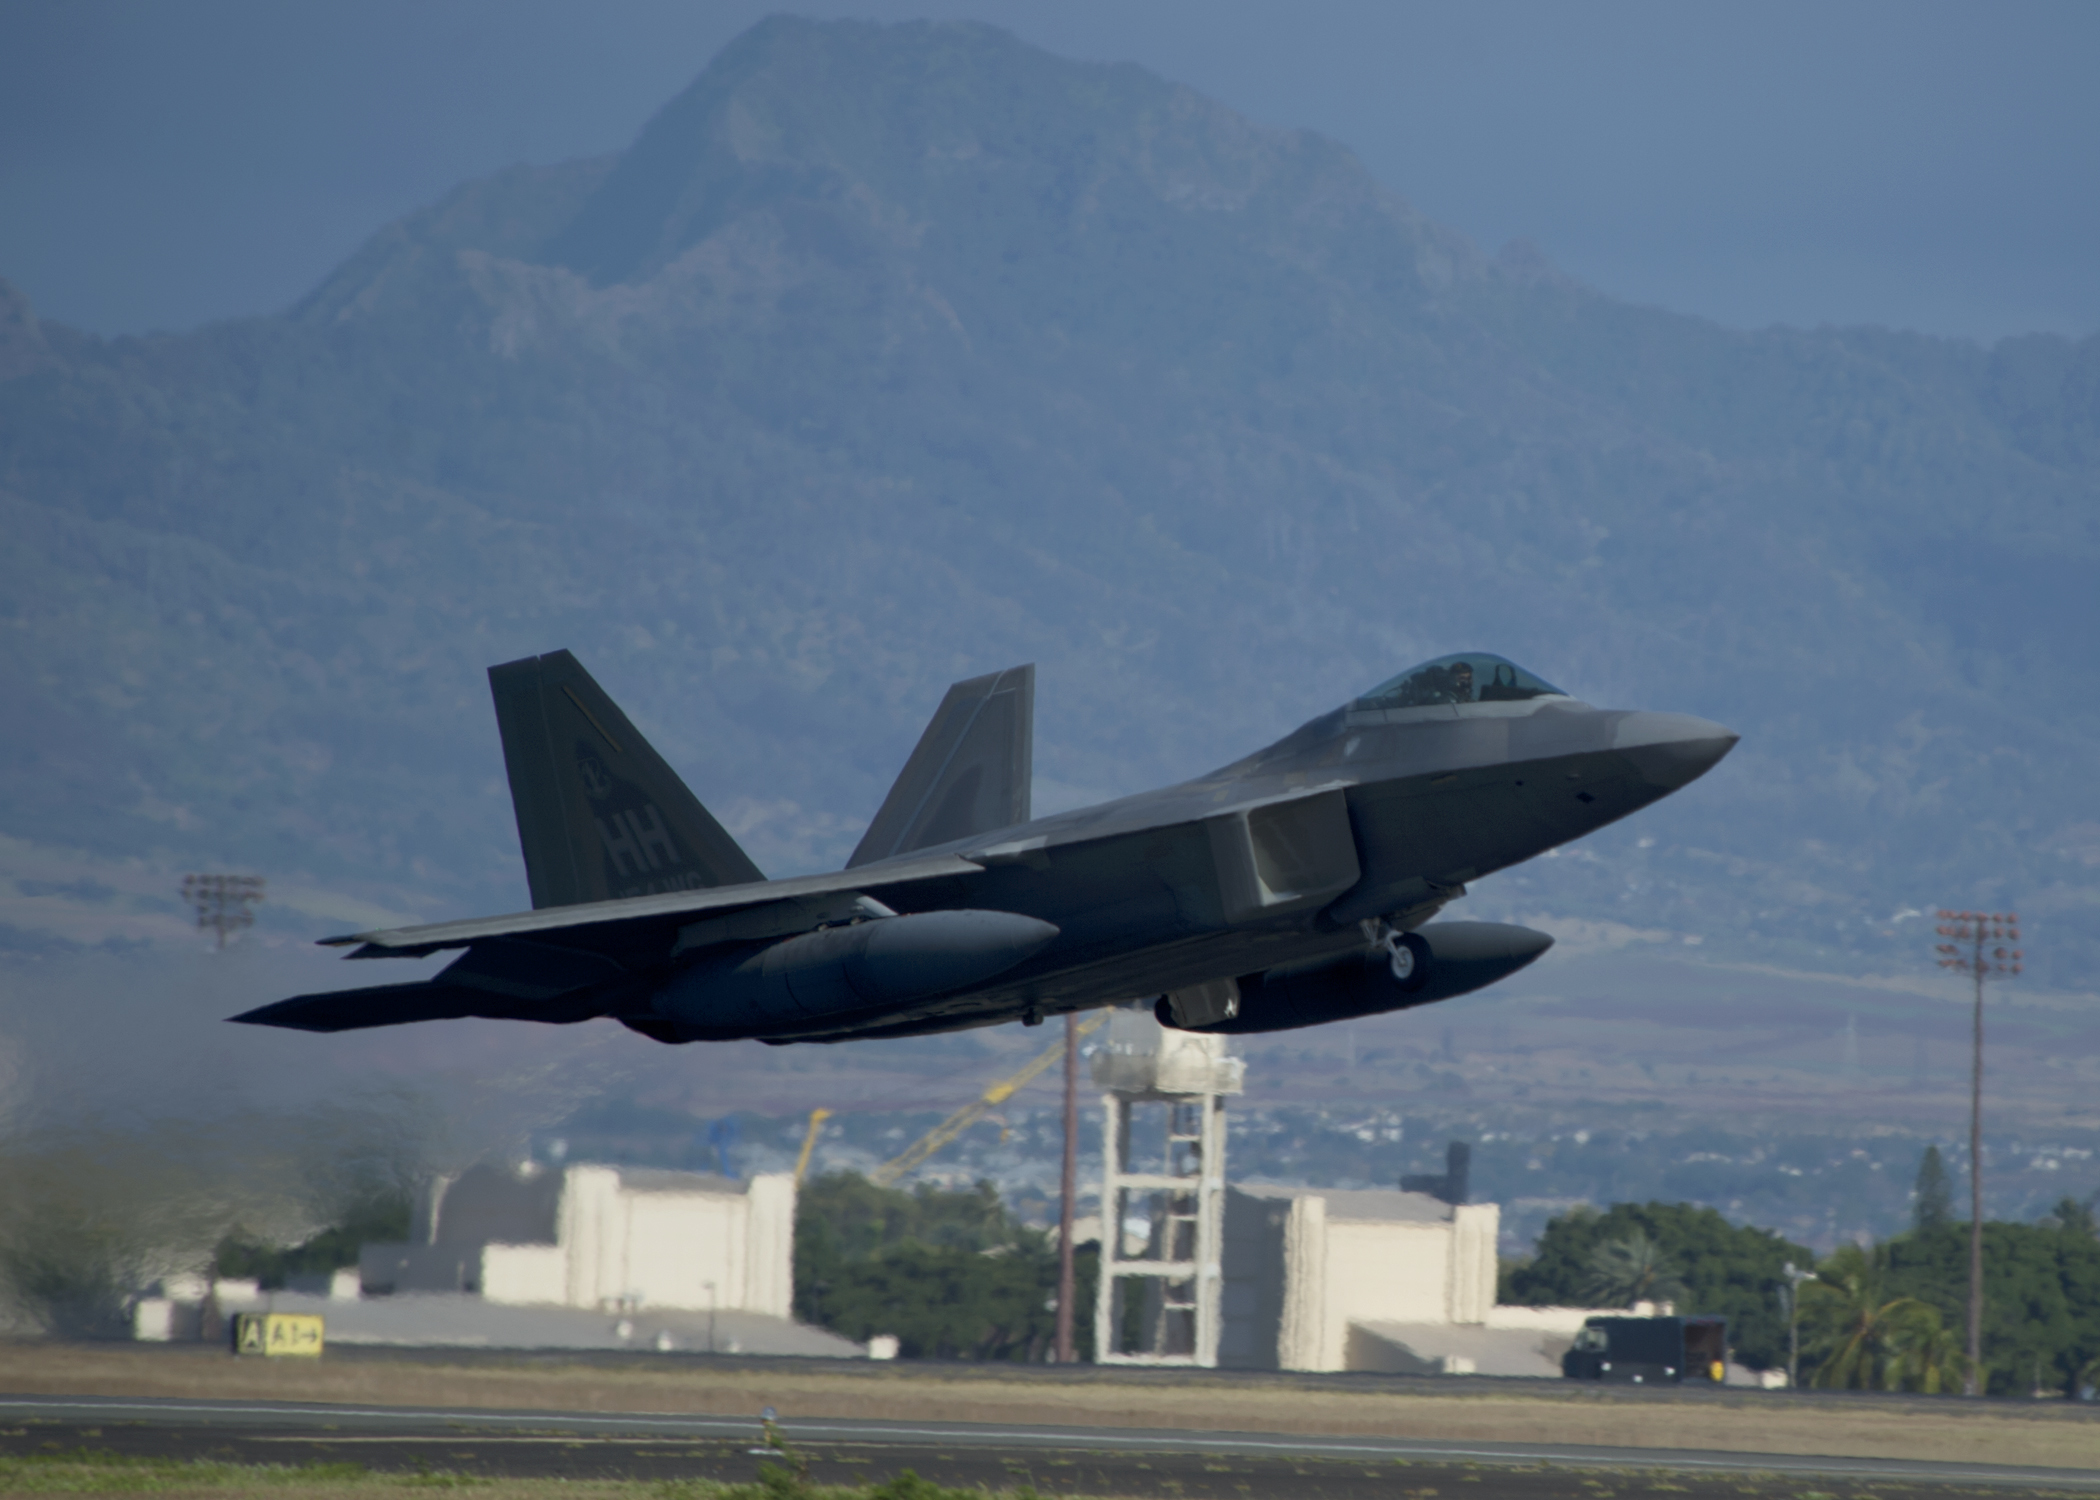 A United States Air Force F-22 Raptor, from the Hawaiian Raptors, takes off from Joint Base Pearl Harbor-Hickam, Hawaii, April 20, 2015. The Hawaiian Raptor is traveling to Nellis Air Force Base, Nev., to take part in a joint training event. (U.S. Air Force photo by Tech. Sgt. Aaron Oelrich/Released)